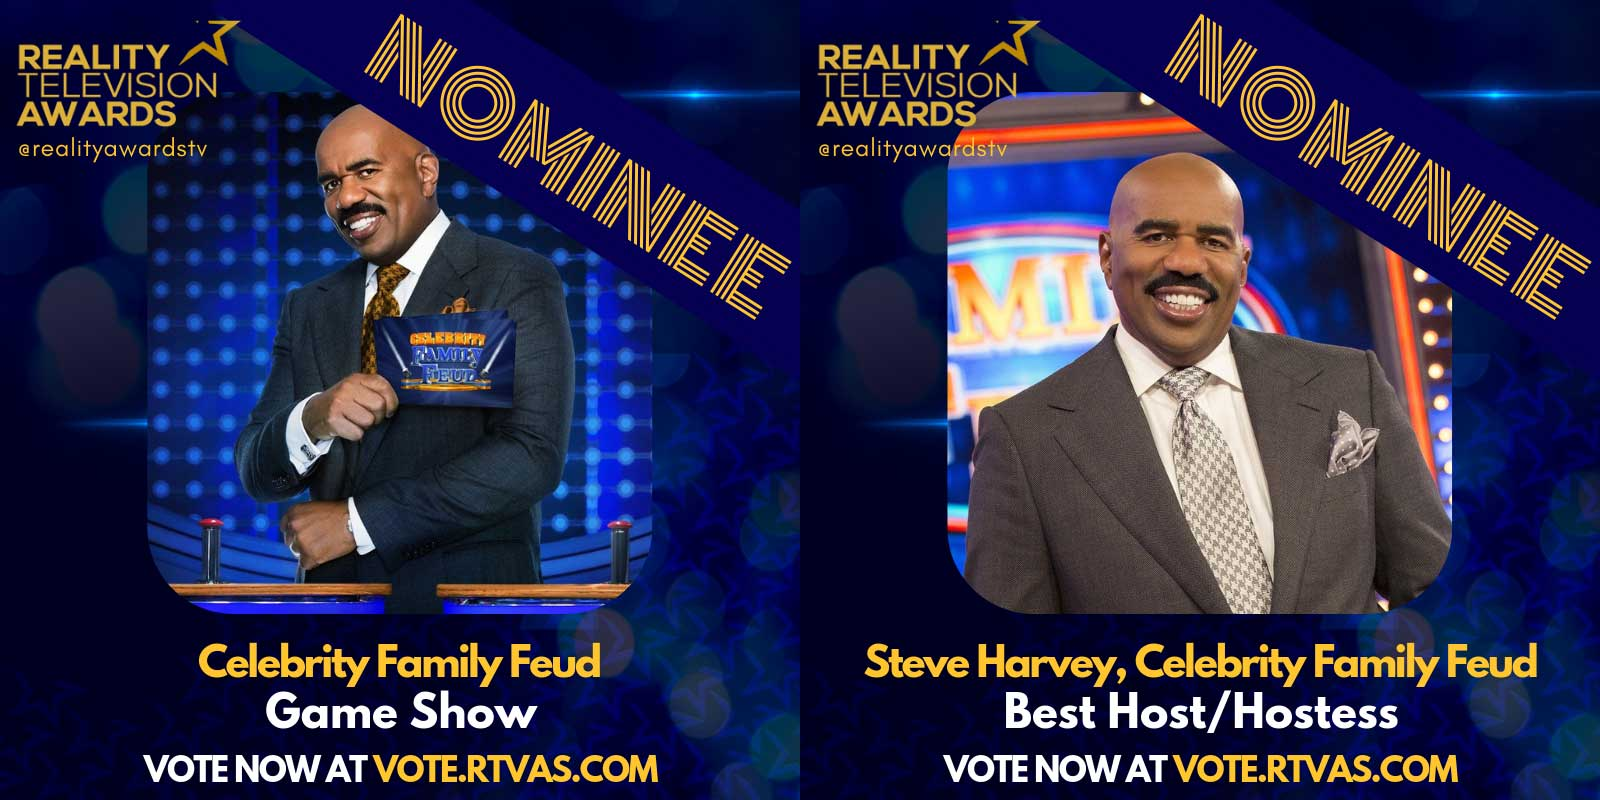 Reality Television Awards Celebrity Family Feud nominations